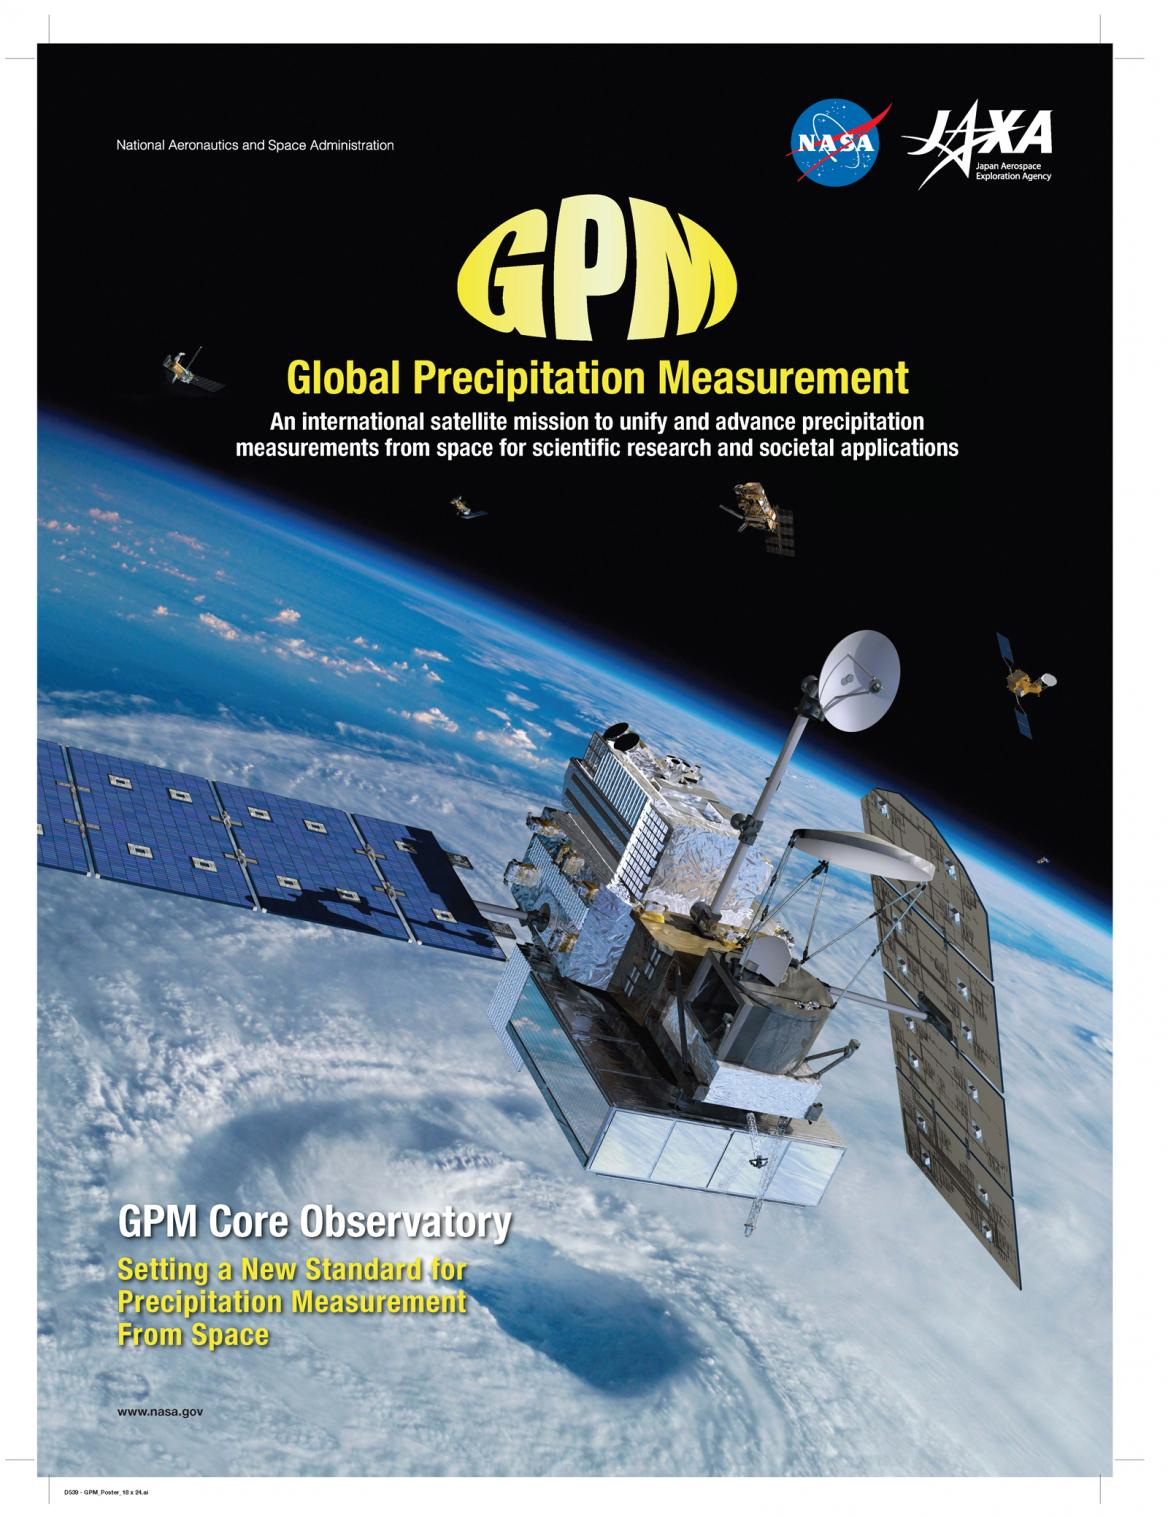 GPM Poster showing the GPM core observatory and constellation satellites